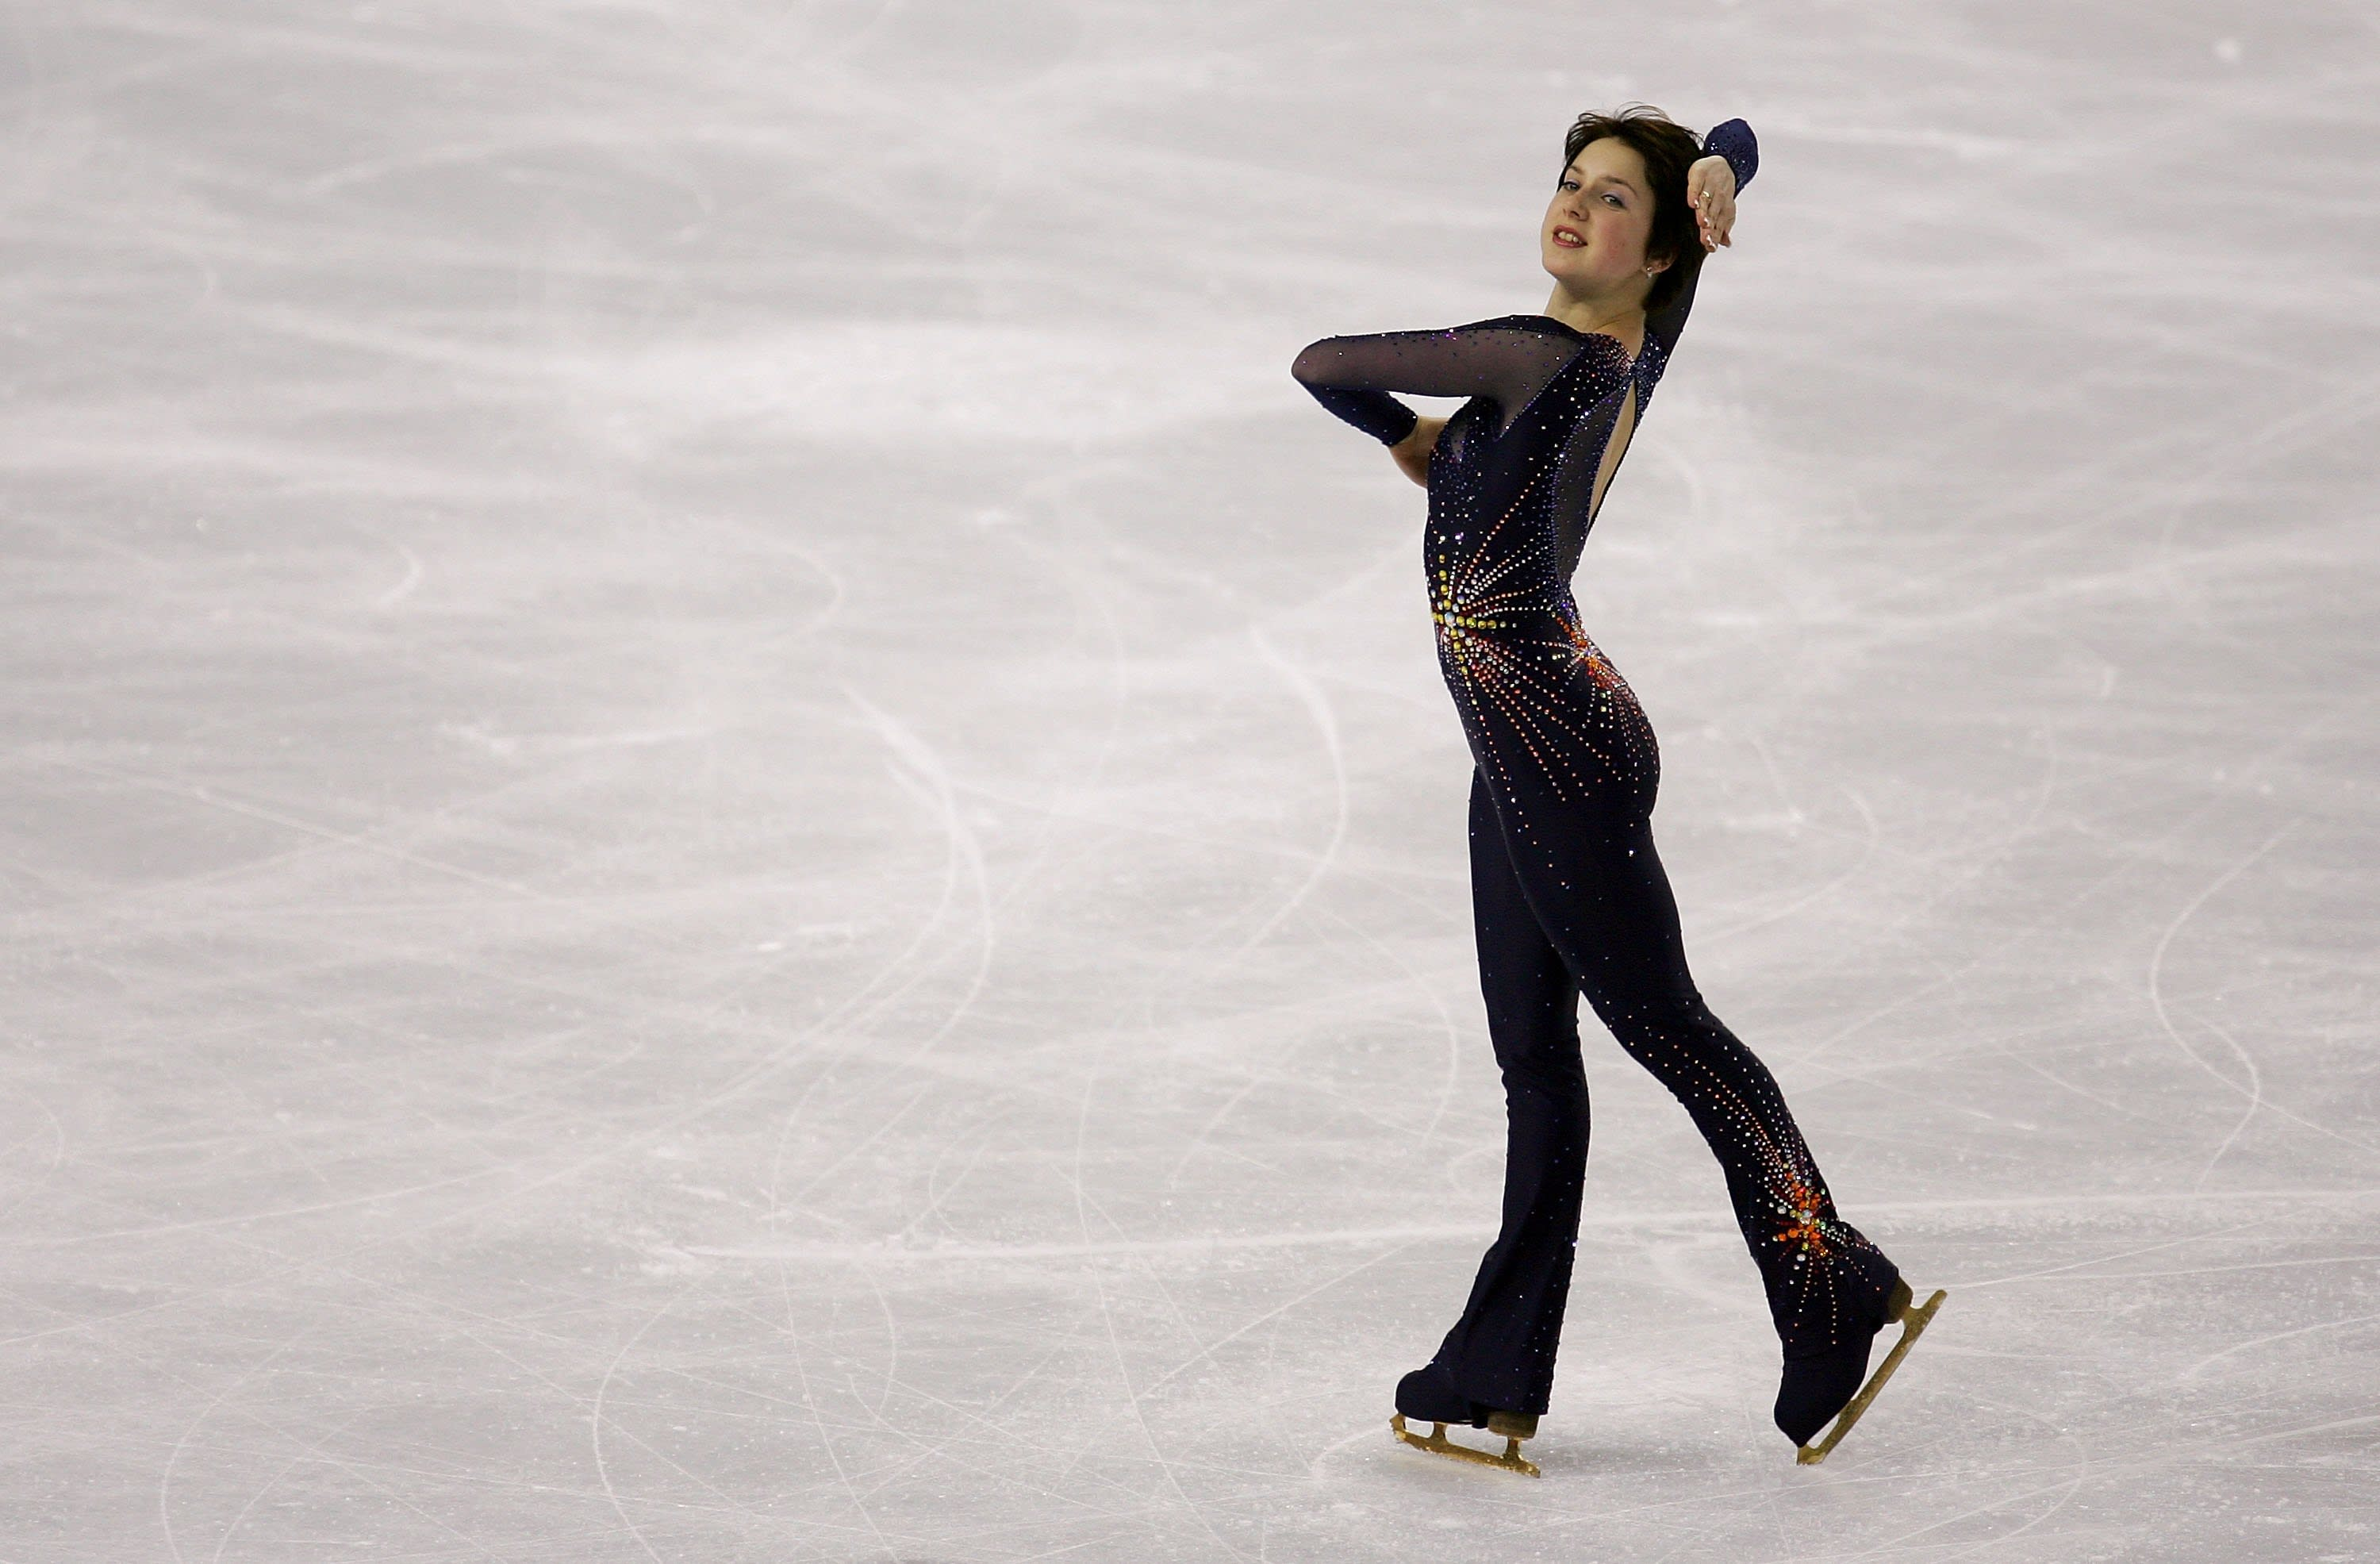 As soon as the skirt-only ice age melted away, Russian skater Irina  Slutskaya wore a fiery bodysuit at the 2006 Olympics.